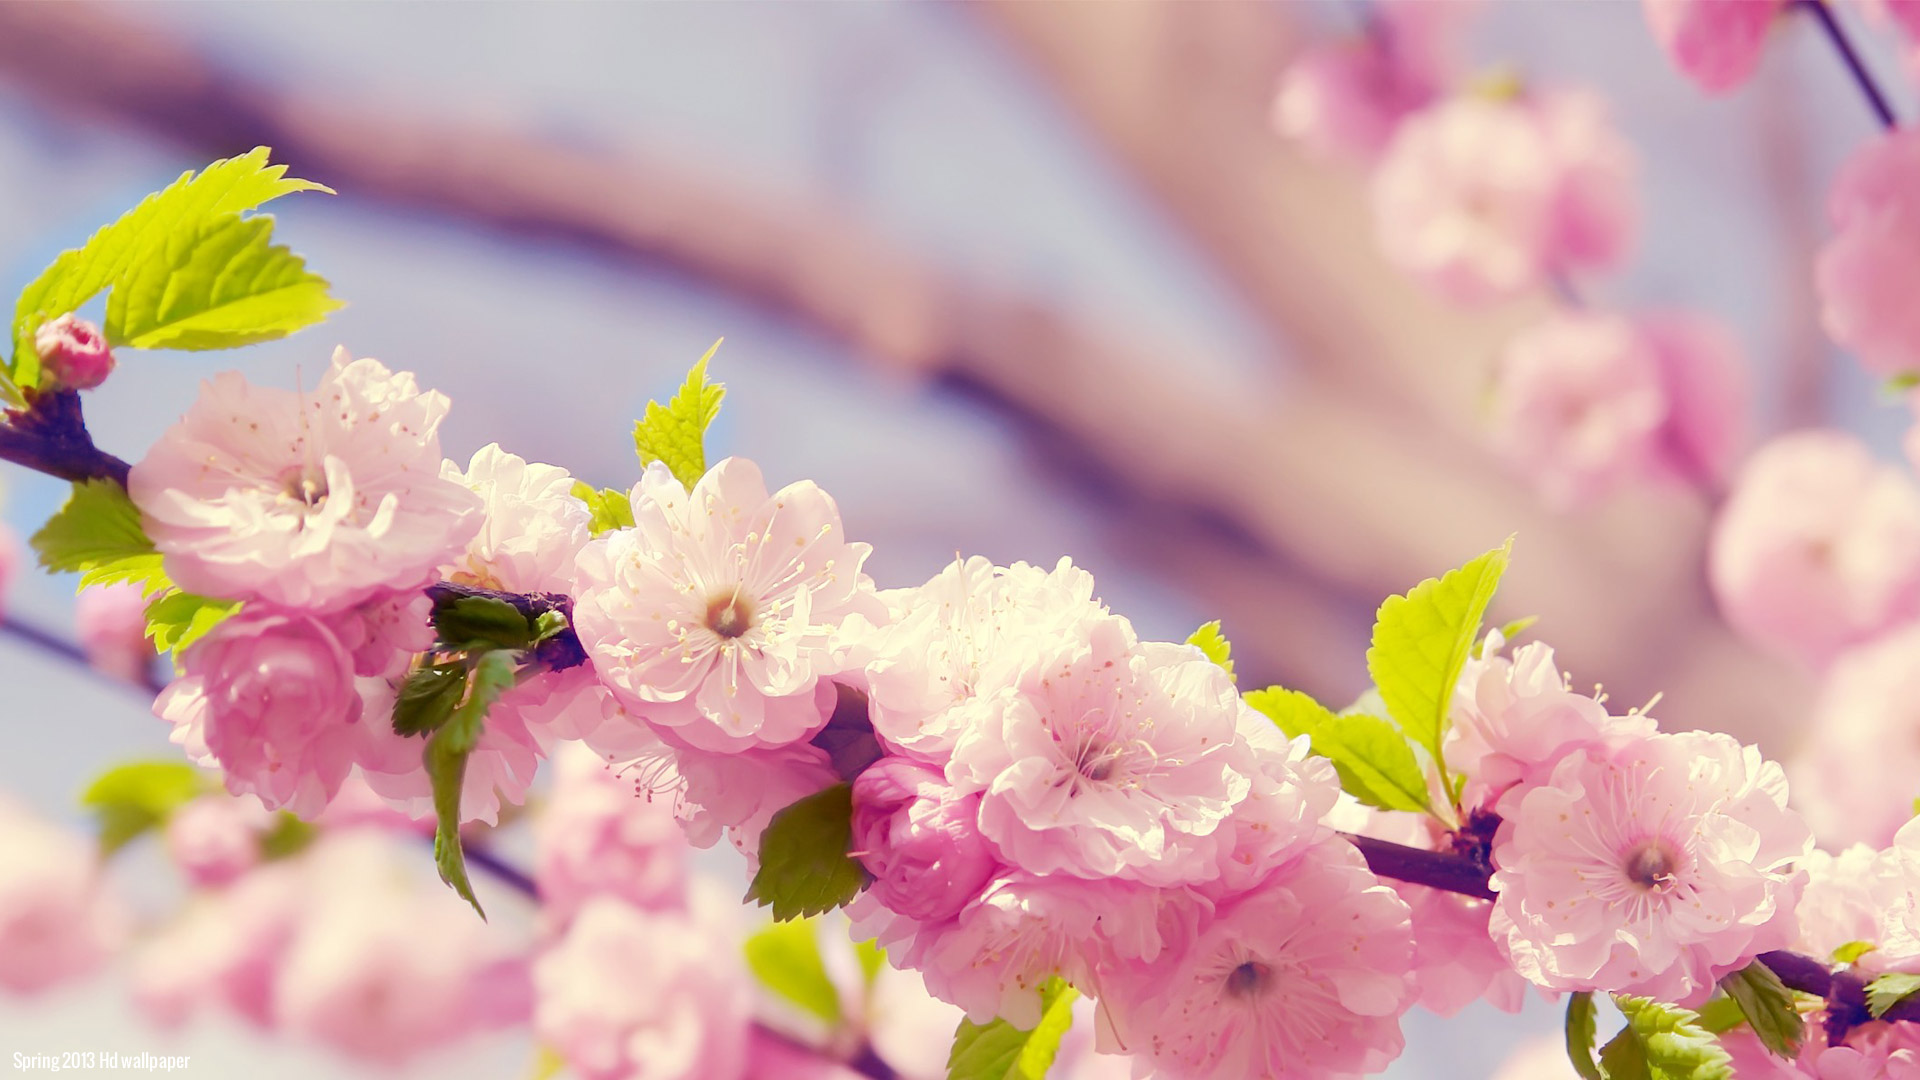 Spring Flower Wallpapers wallpaper Spring Flower Wallpapers hd 1920x1080